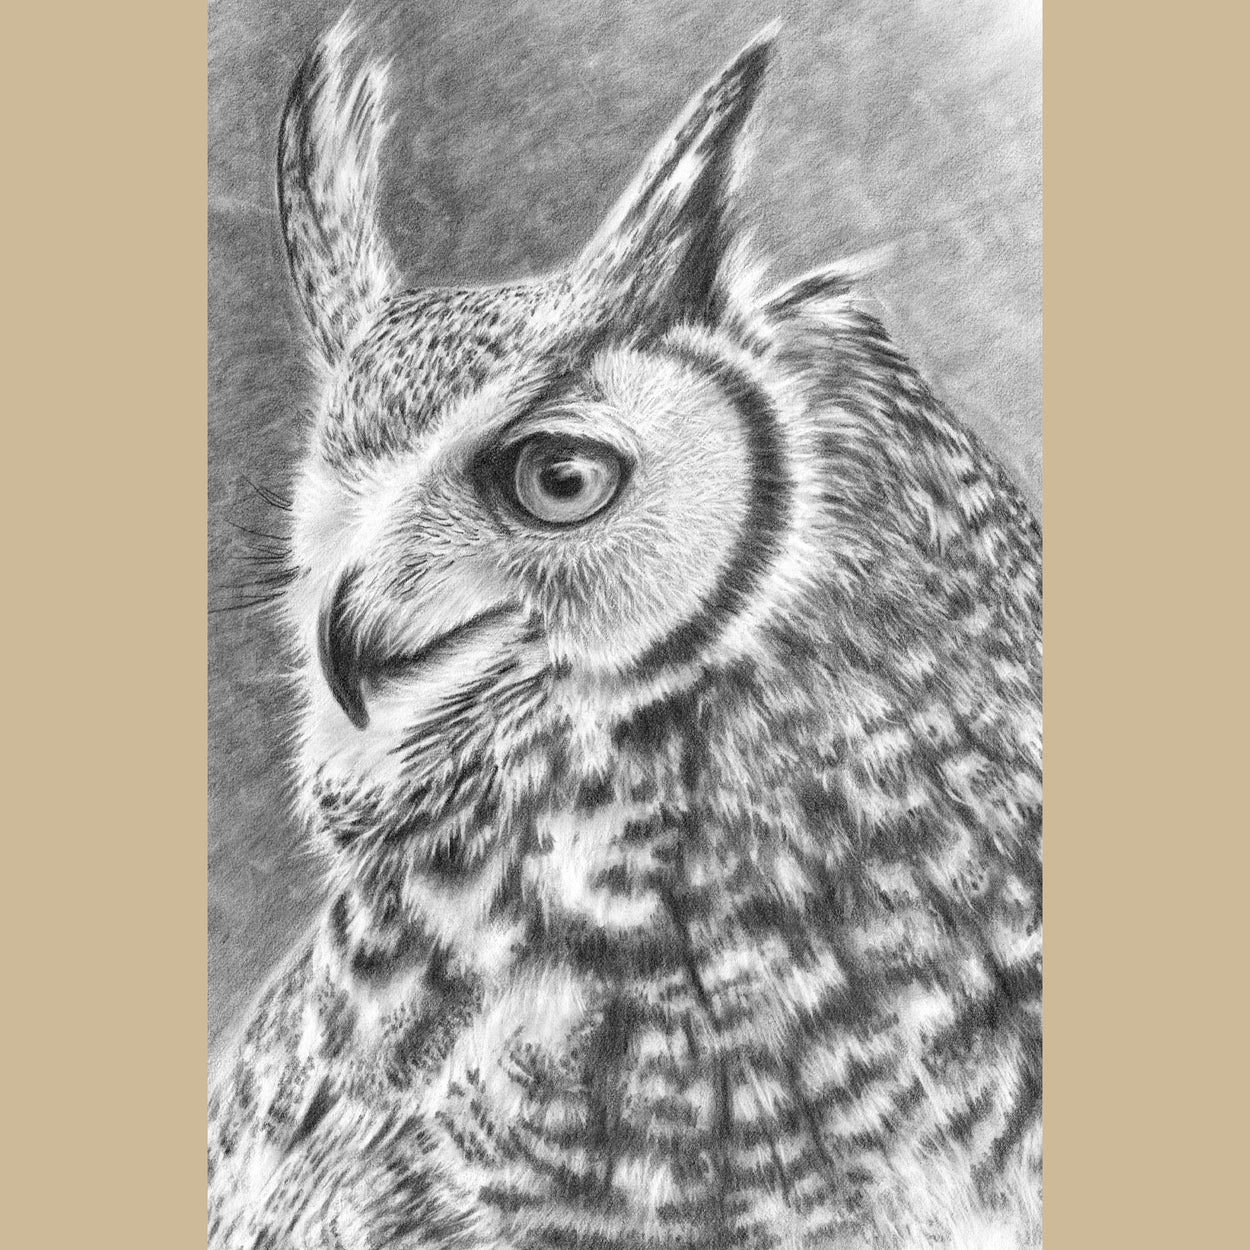 Great Horned Owl Drawing Close-up 1 - The Thriving Wild